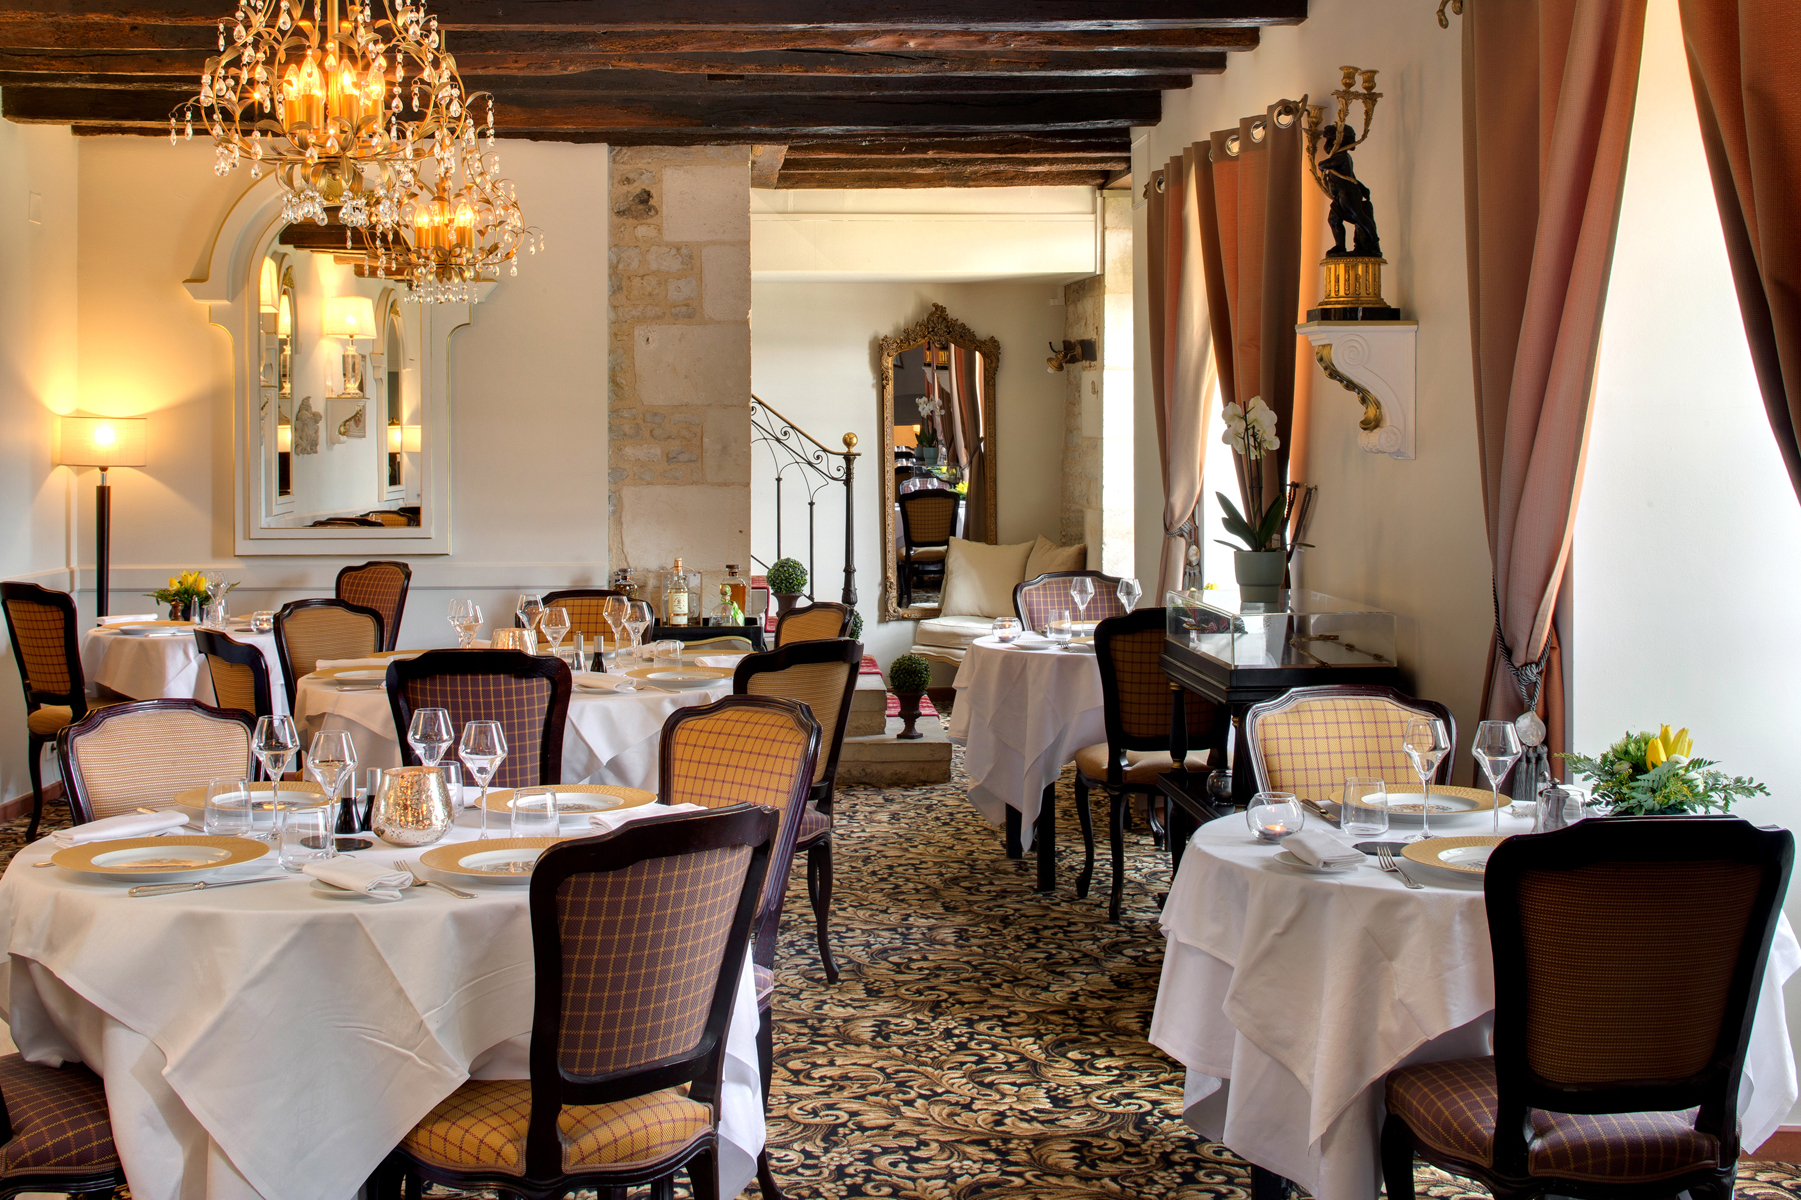 Hôtel Saint-Martin | In Nouvelle Aquitaine, 20 minutes from Niort, France | Weddings & Events